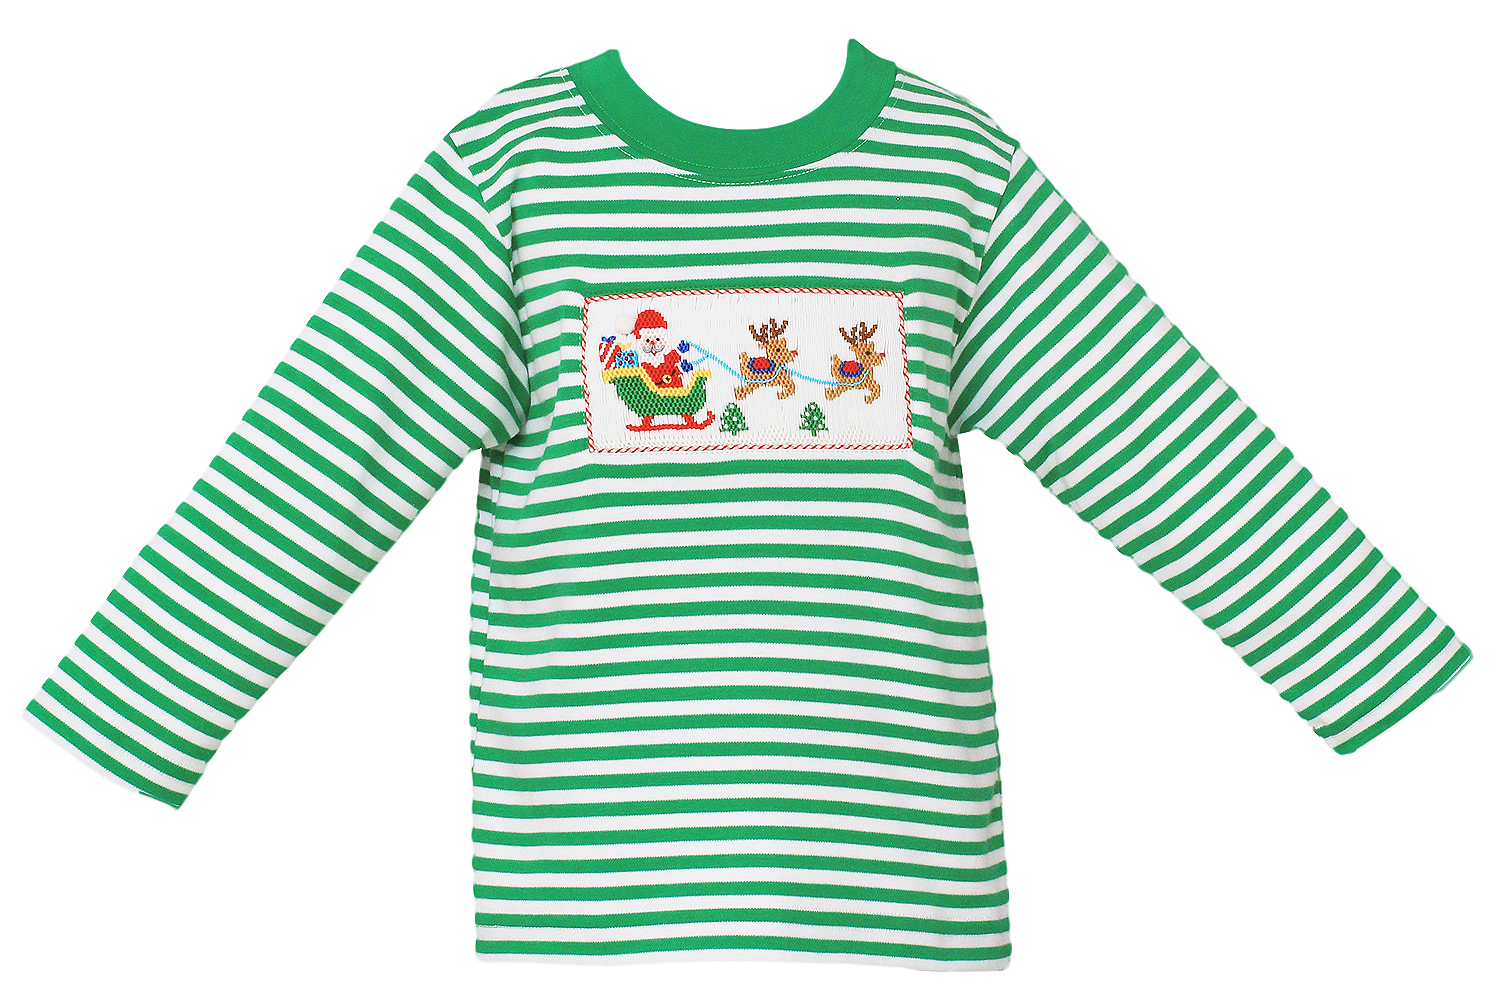 4de33267c Anavini Baby   Toddler Boys Green Striped Knit Smocked Santa Sleigh ...